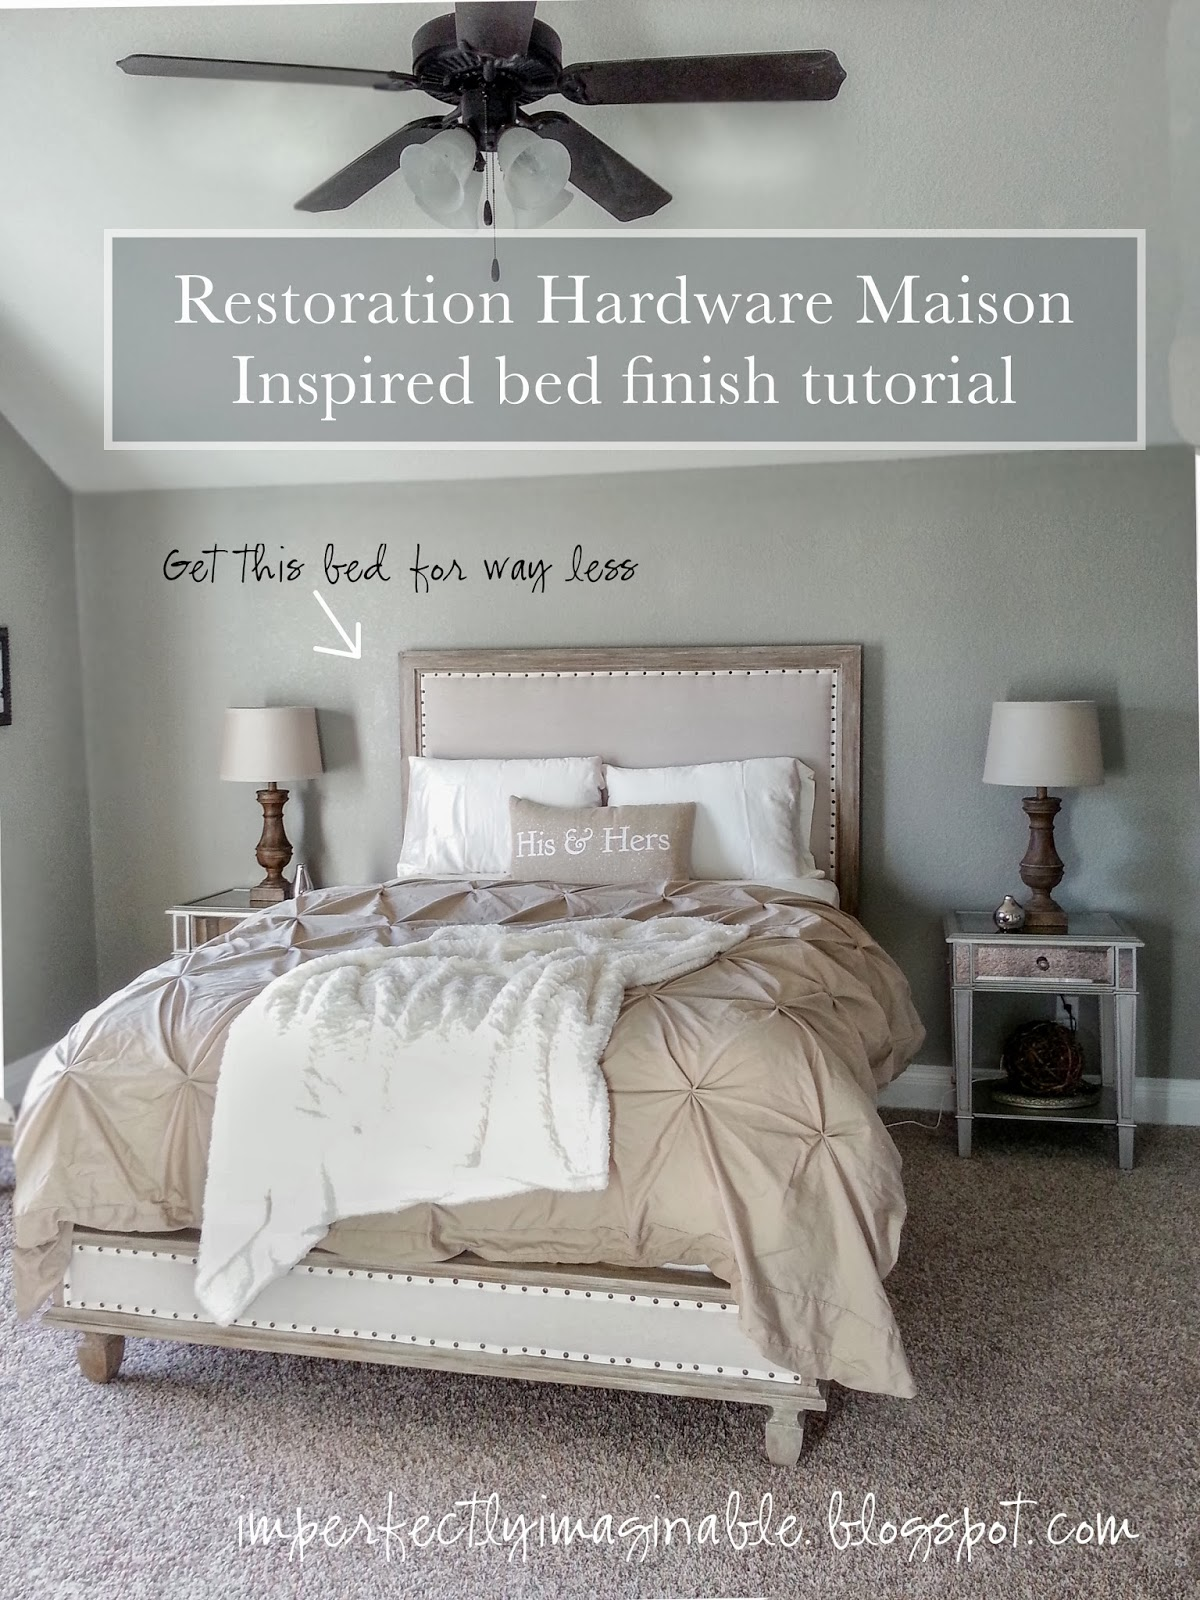 Restoration Hardware Finish Tutorial For Maison Inspired Bed